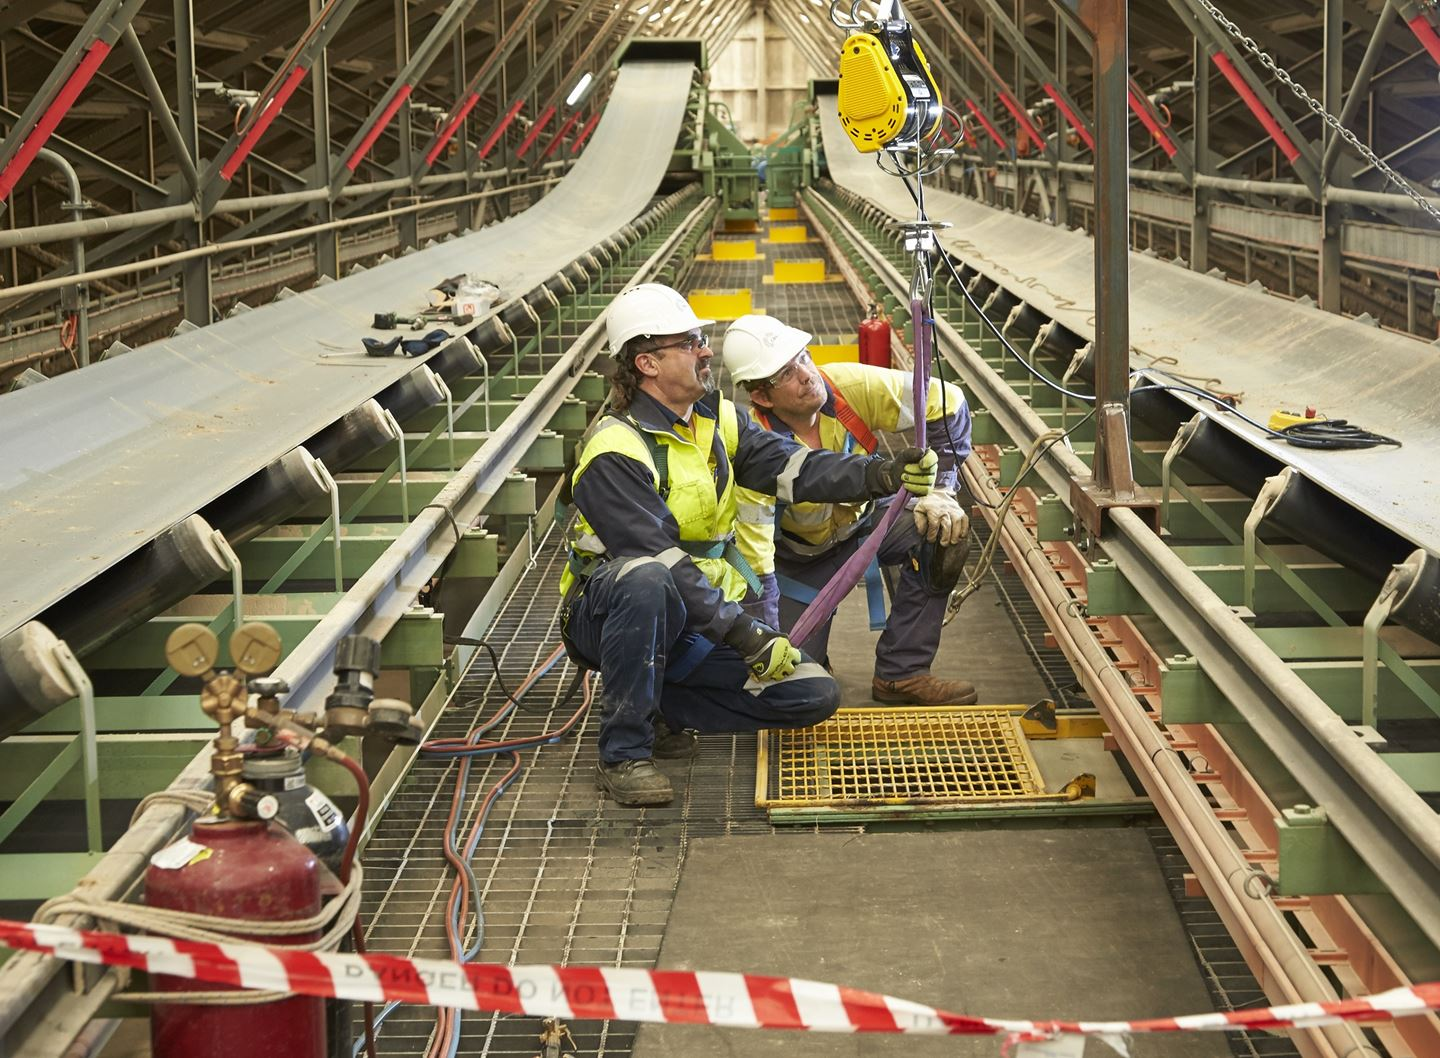 Two men in work clothing inspect a strap between two conveyor builts